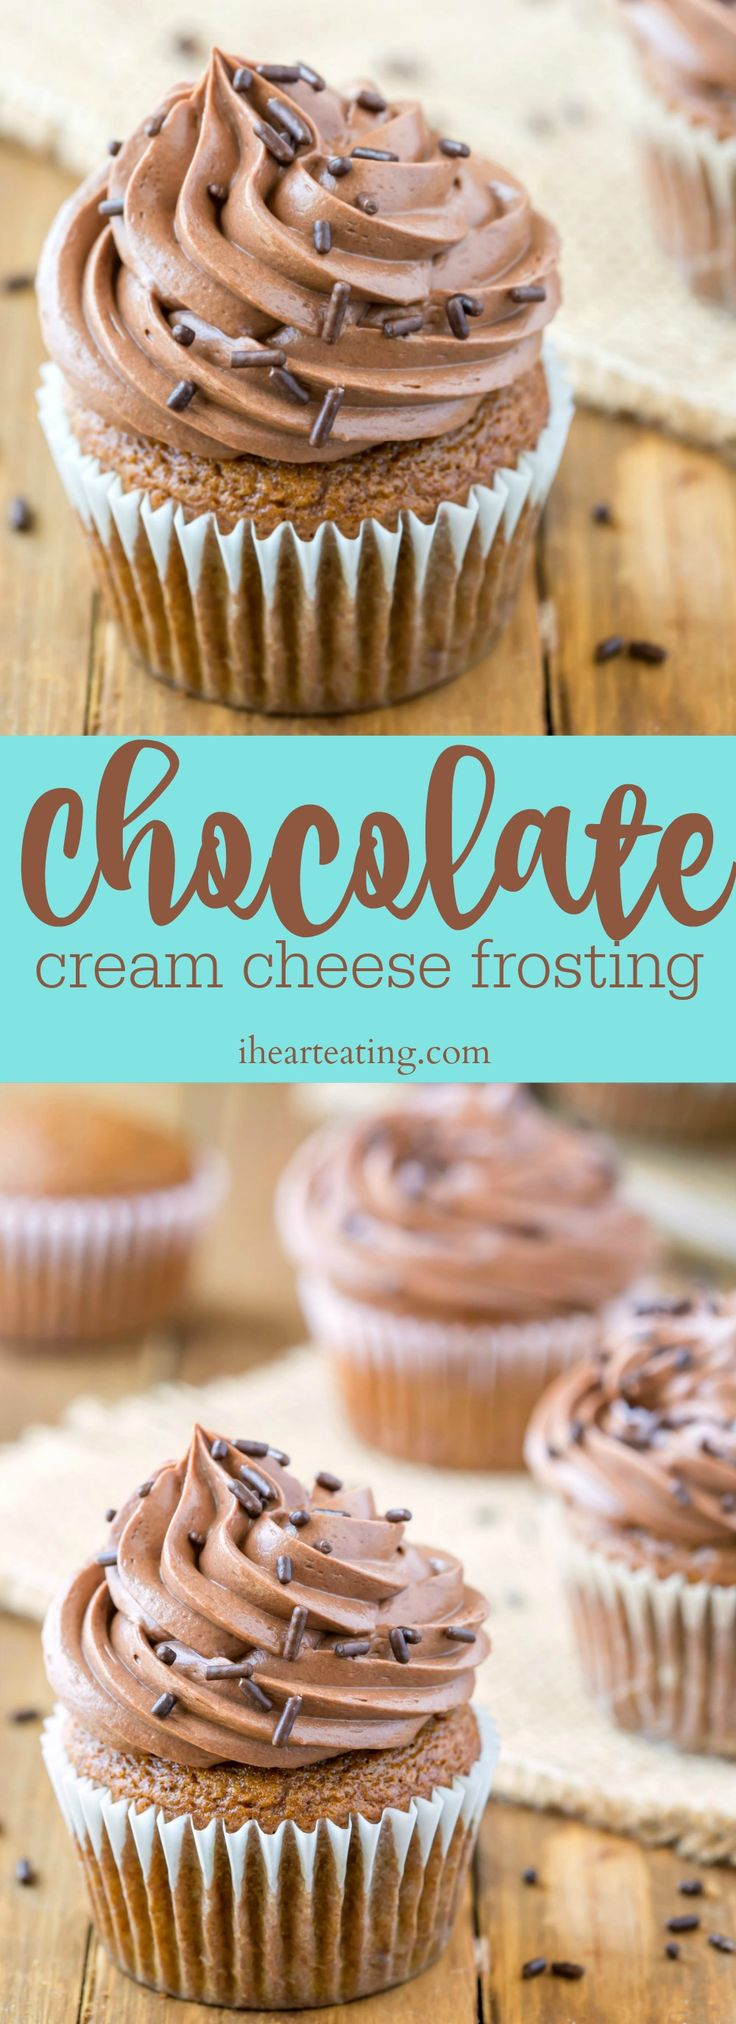 Rich and creamy chocolate cream cheese frosting recipe is delicious paired with chocolate cake, white cake, or even pumpkin cake!